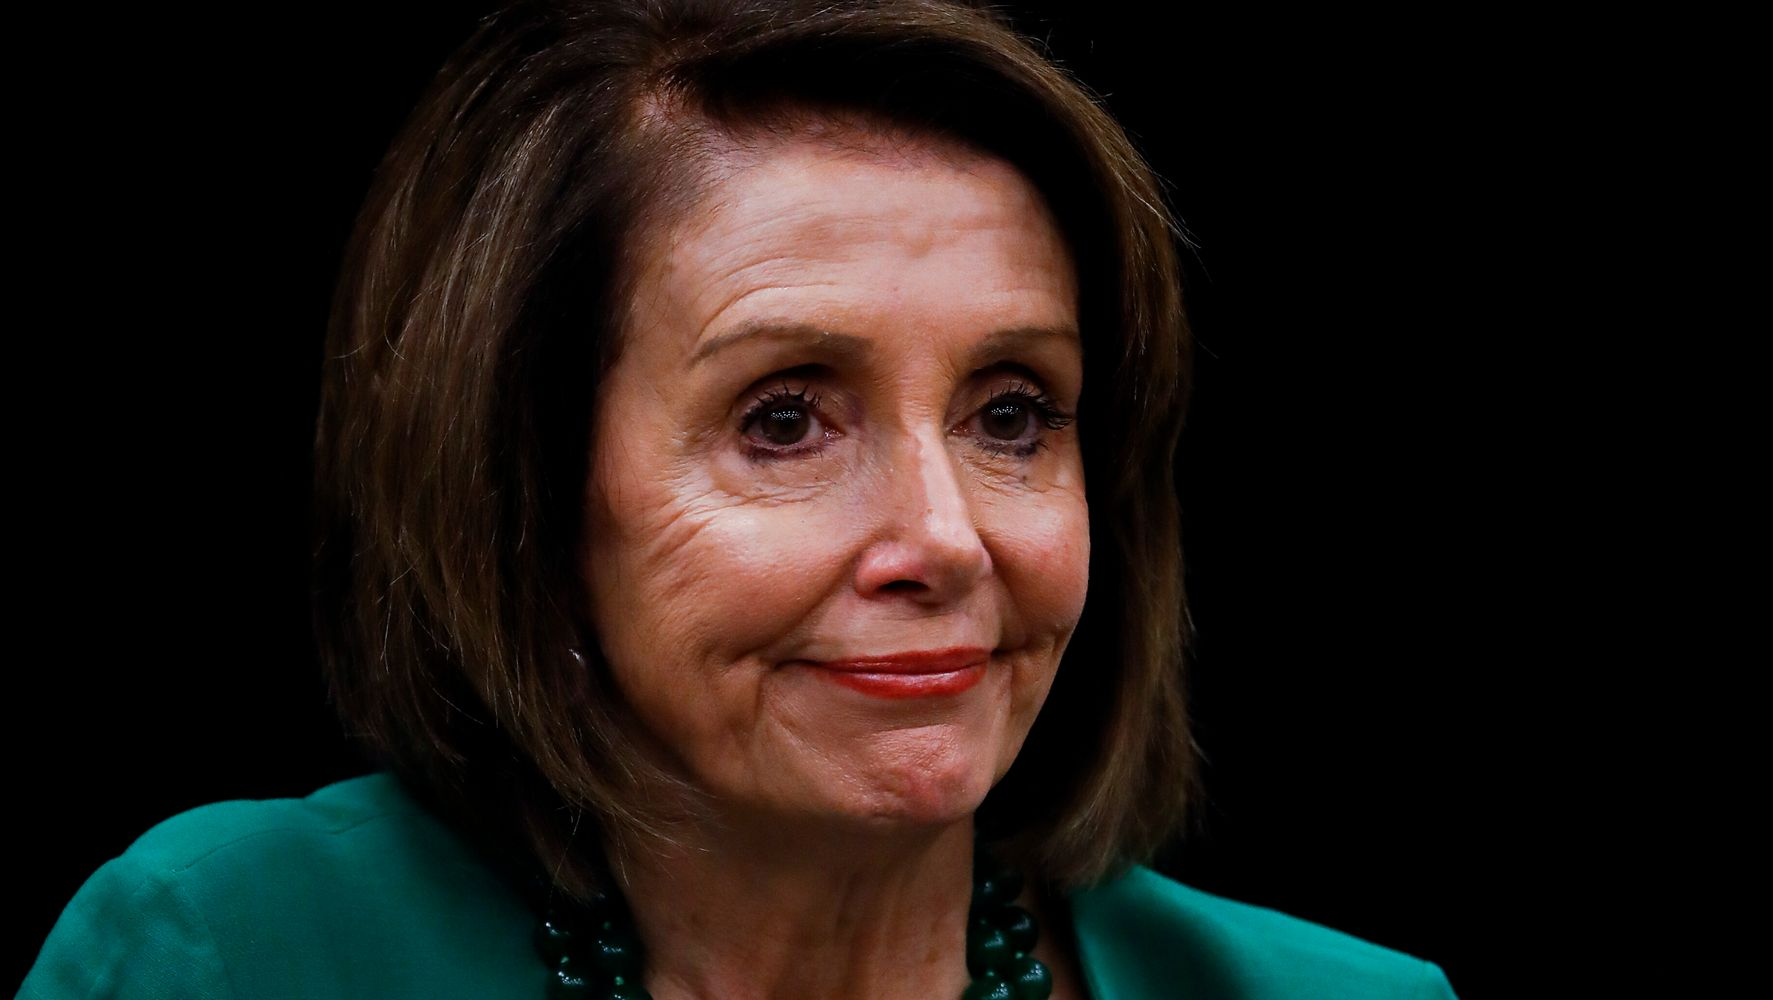 Facebook Refuses To Delete Fake Nancy Pelosi Video That